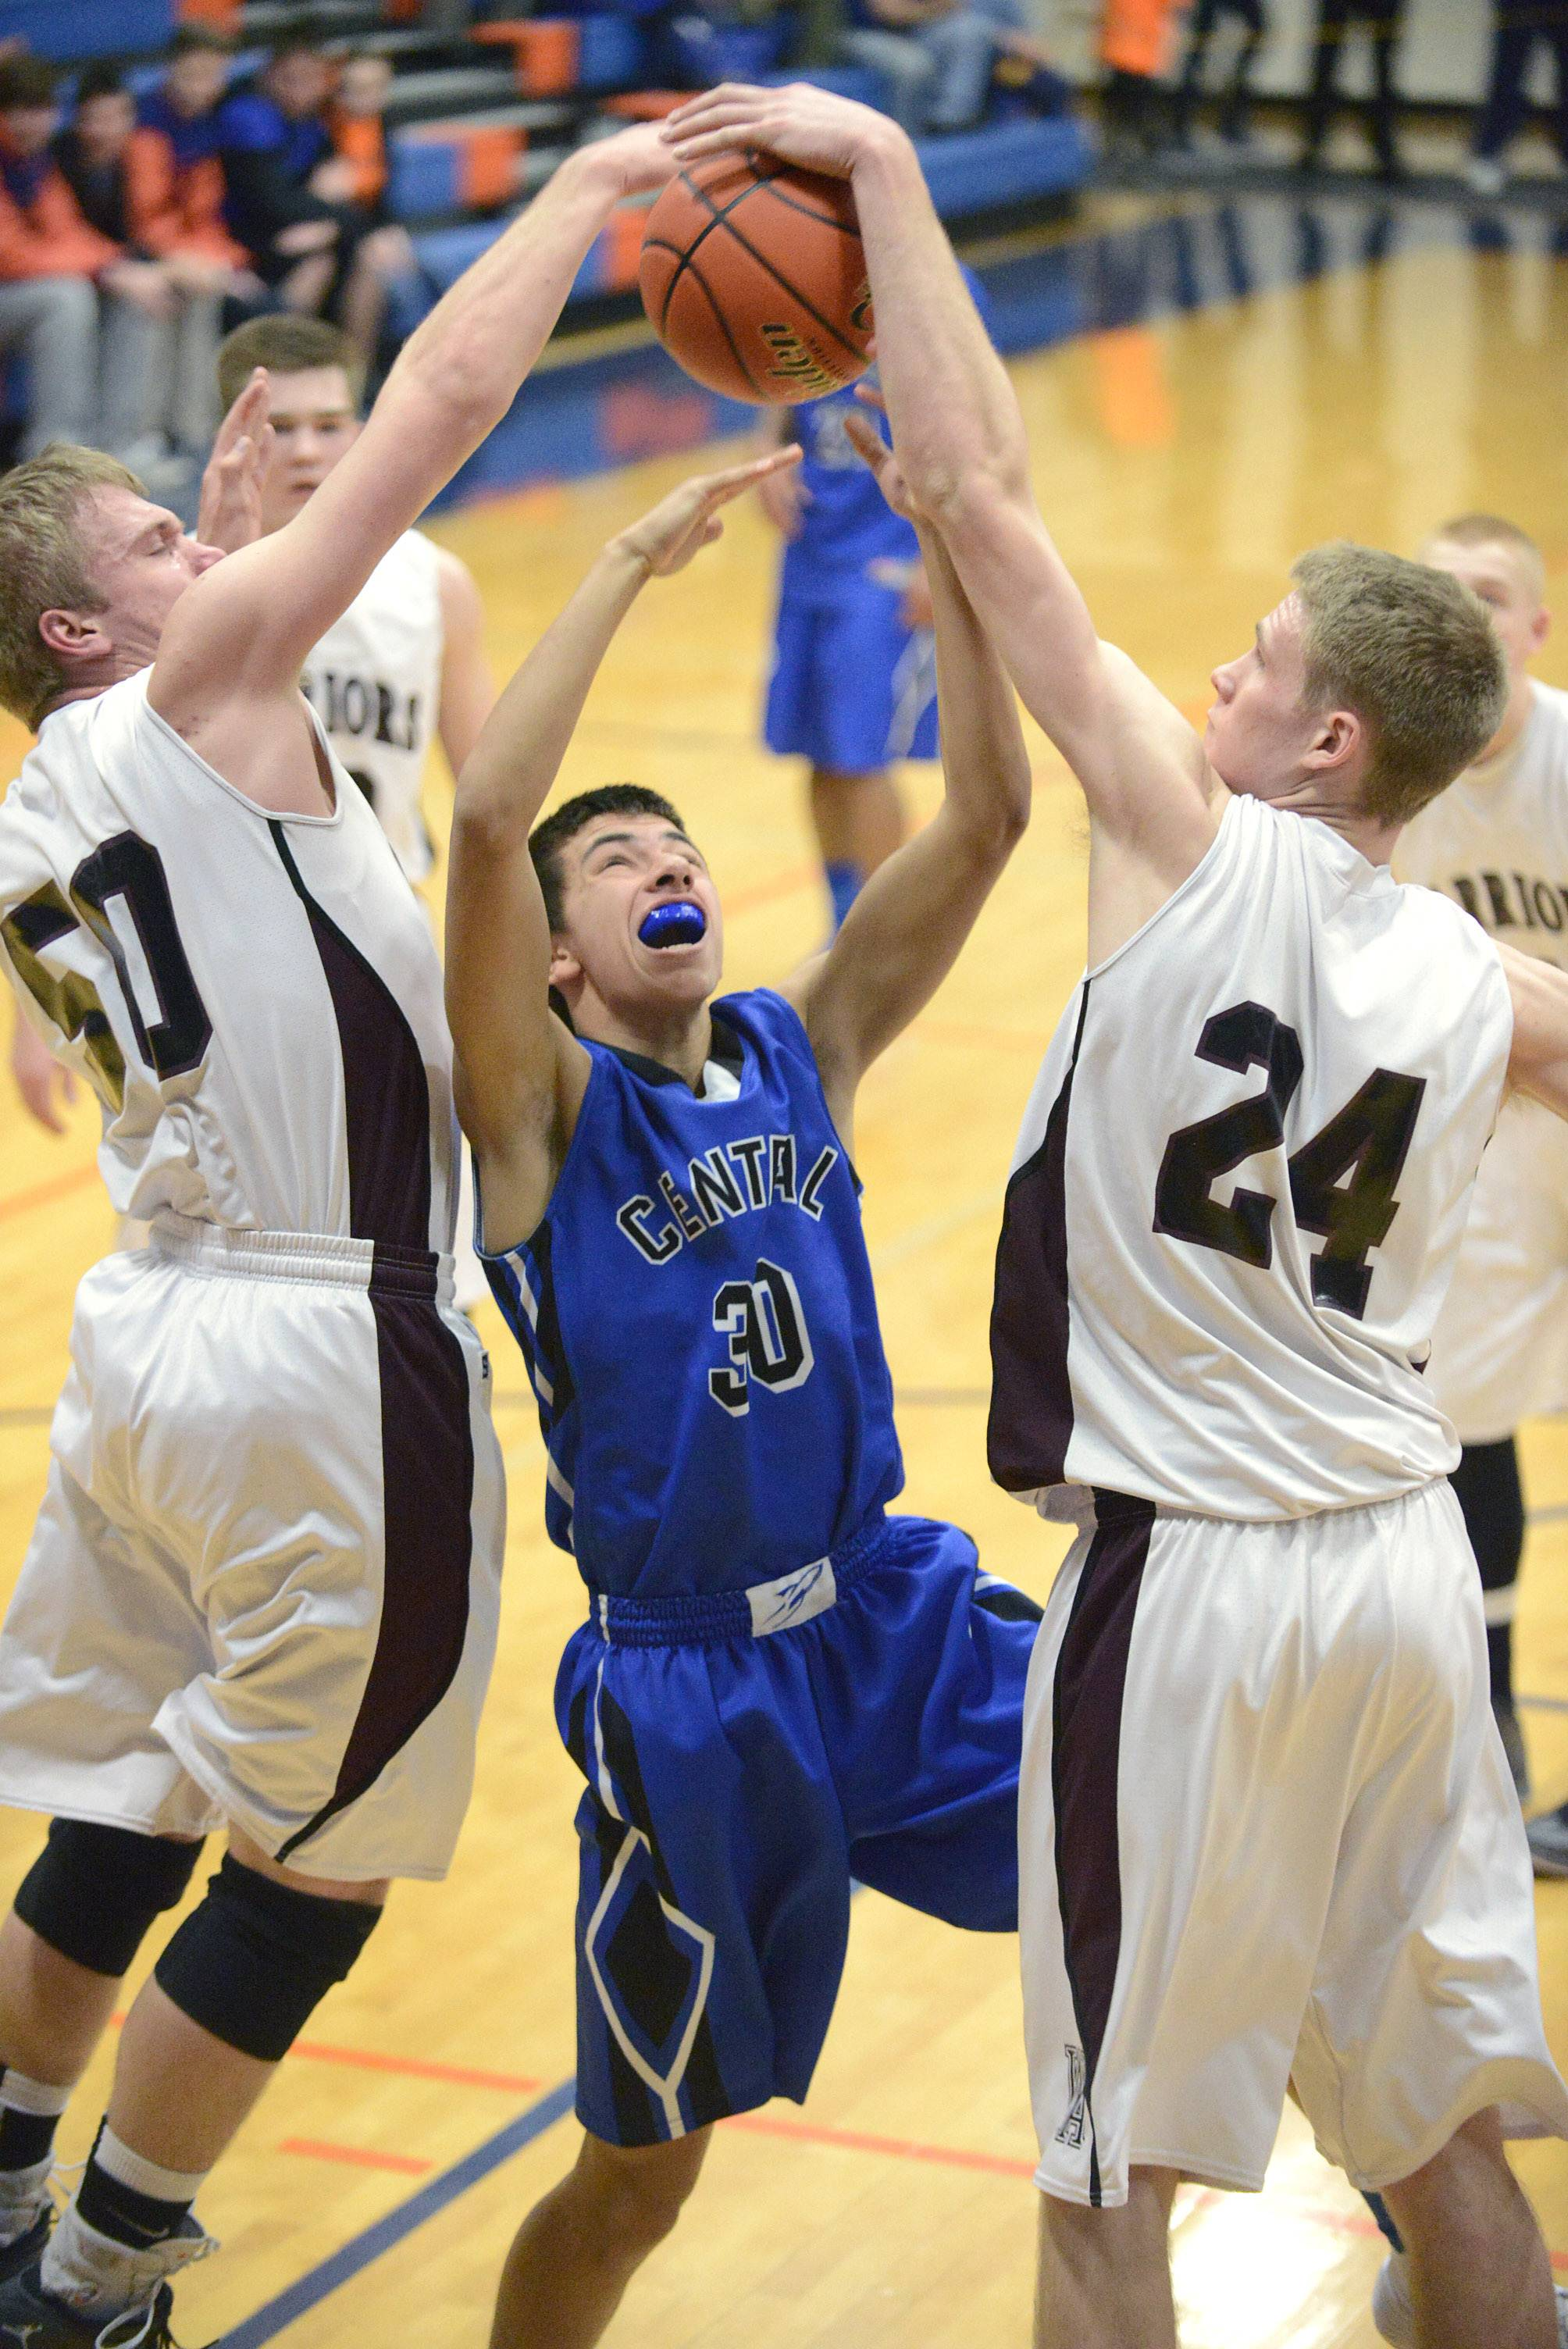 Burlington Central's James Raney is denied a basket by Wheaton Academy's Jacob Lindstedt, left, and Gordon Behr, right, during Wednesday's Class 3A regional game in Genoa.